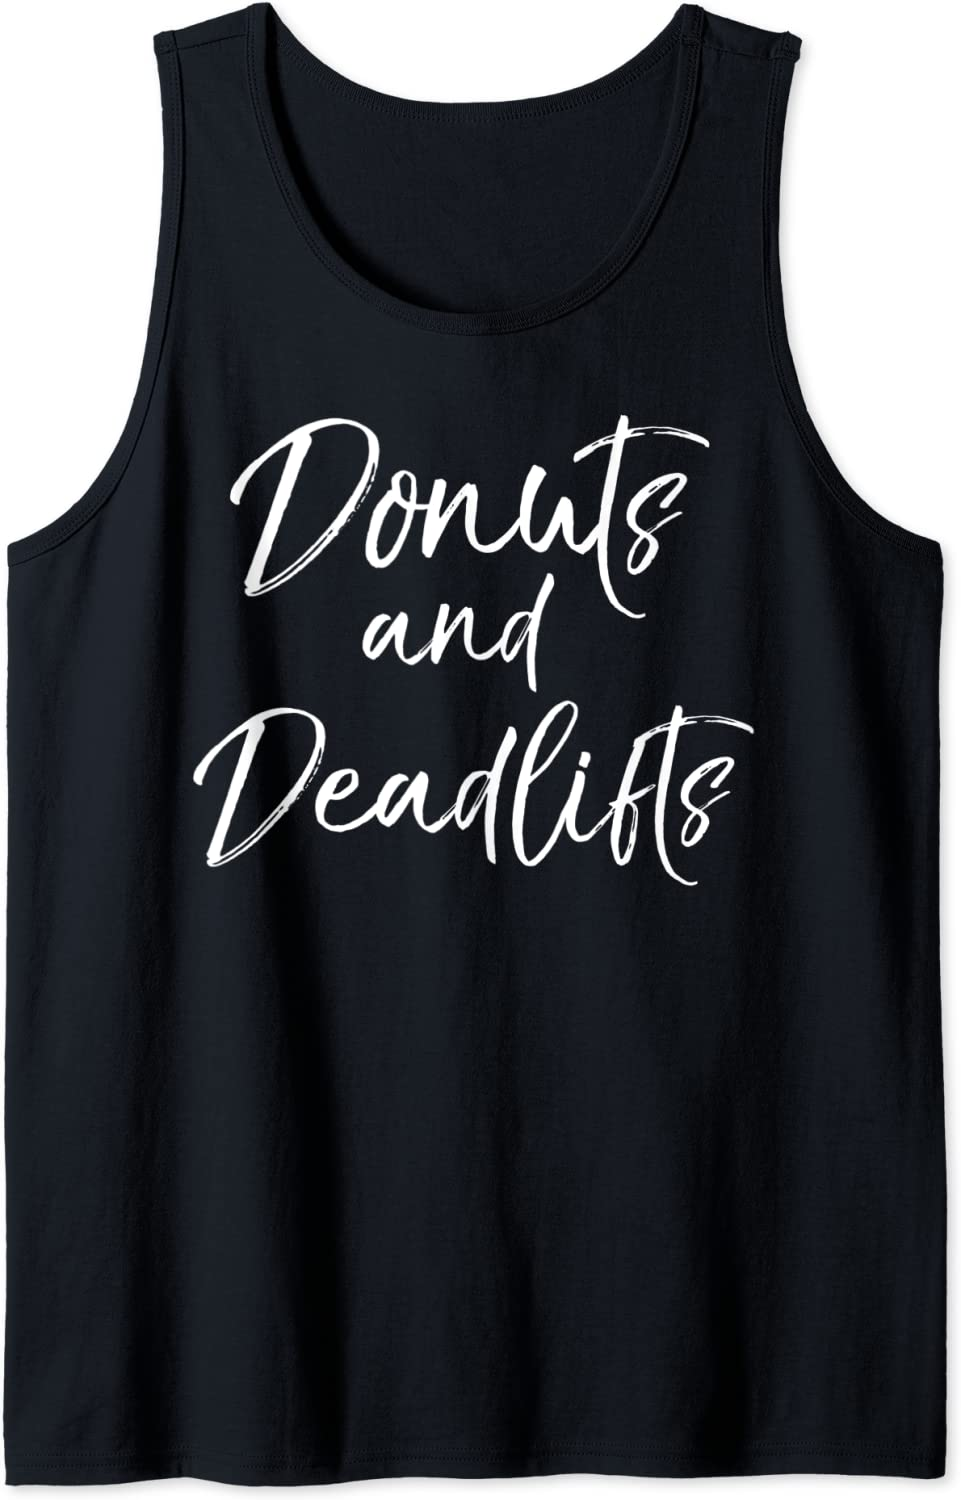 Workout Tanks for Women Deadlifts for Donuts Tank Ladies Workout Tank Performance Tank Pound Tank Top Workout Tank Gym Tank Top